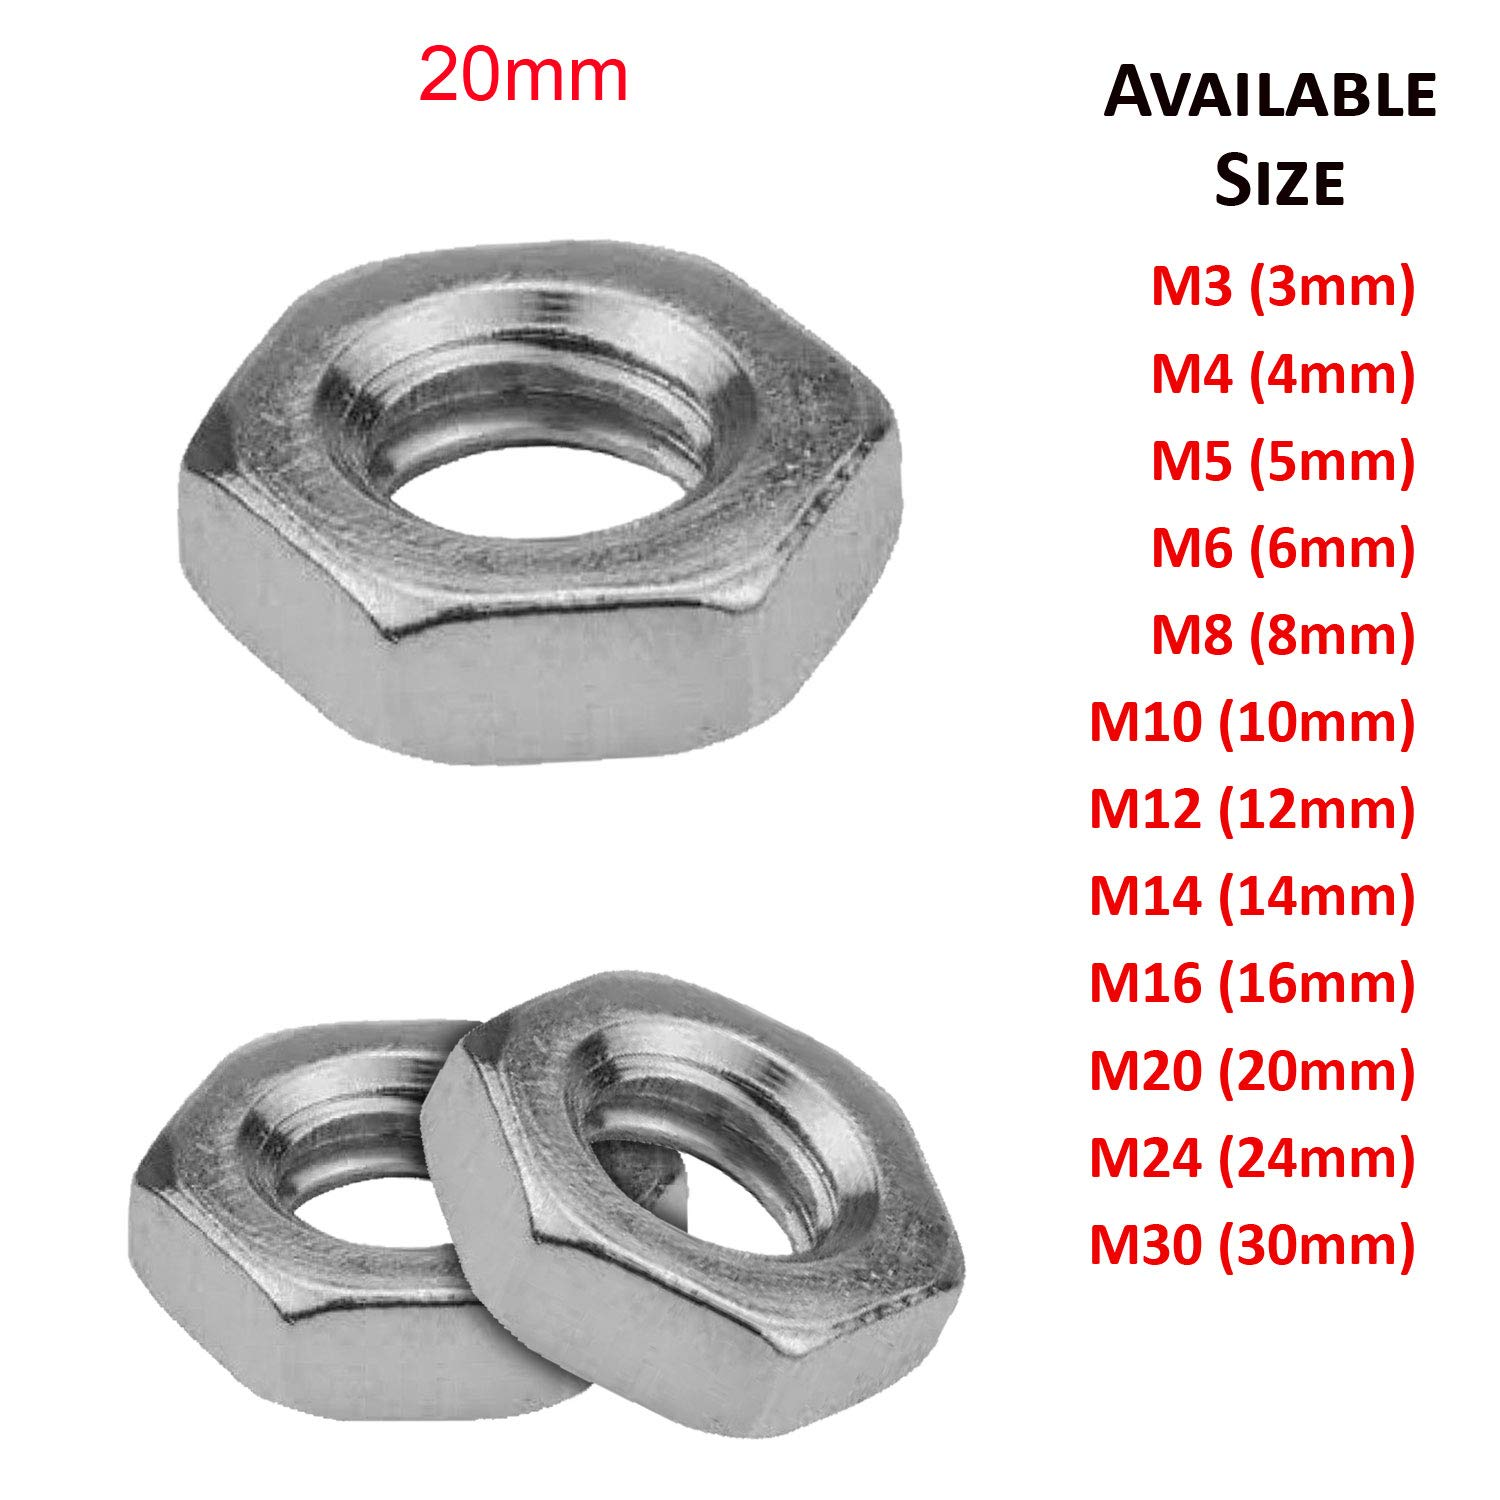 (24mm) M24 Hexagon Half Lock Nuts Bright Zinc Plated Grade 4 DIN 439 - Pack 20 SHUKAN